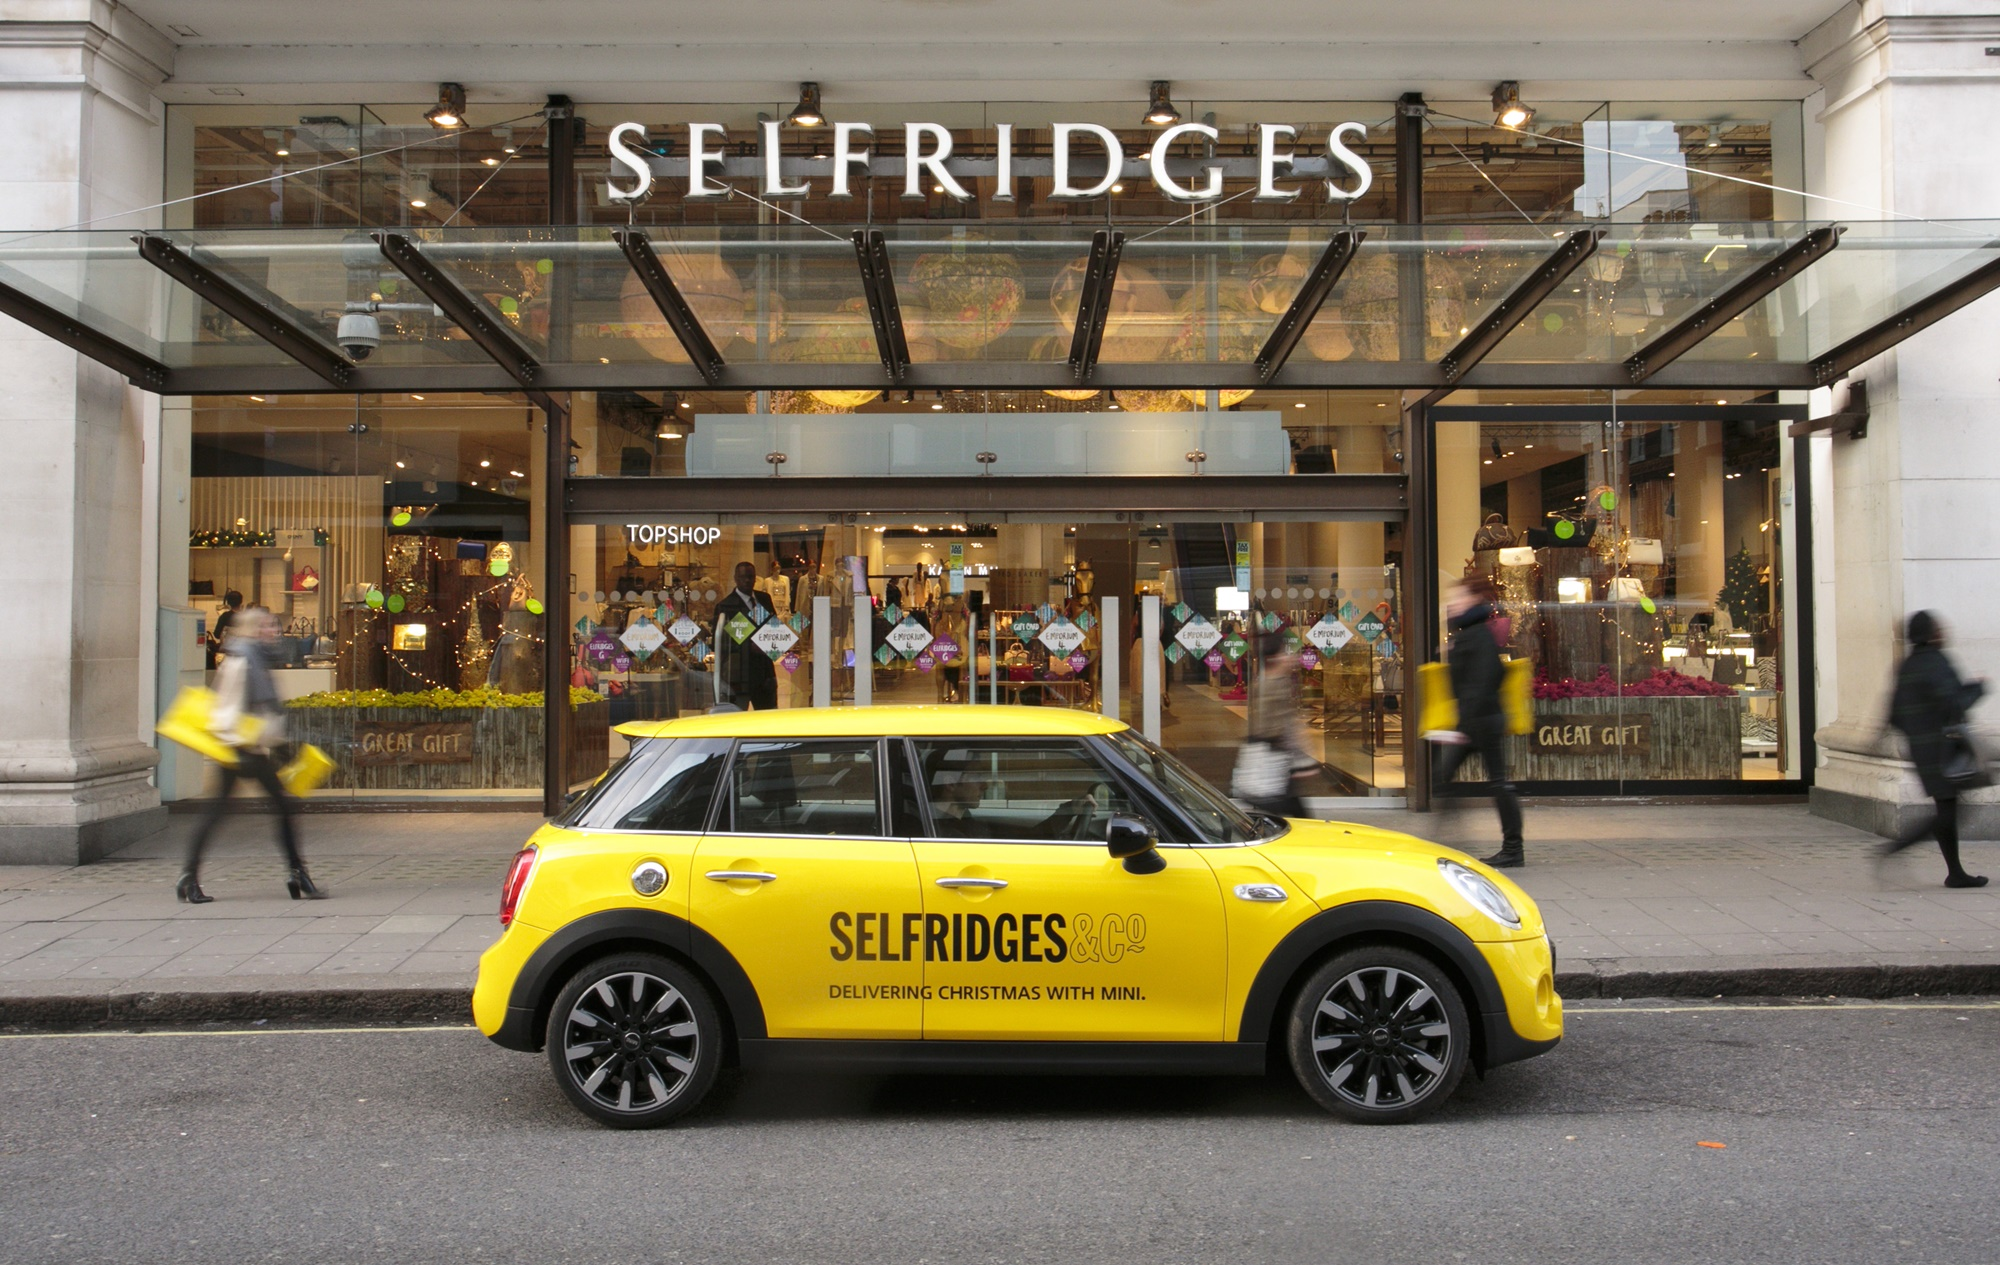 Above: You could win a £500 spending spree to Selfridges.